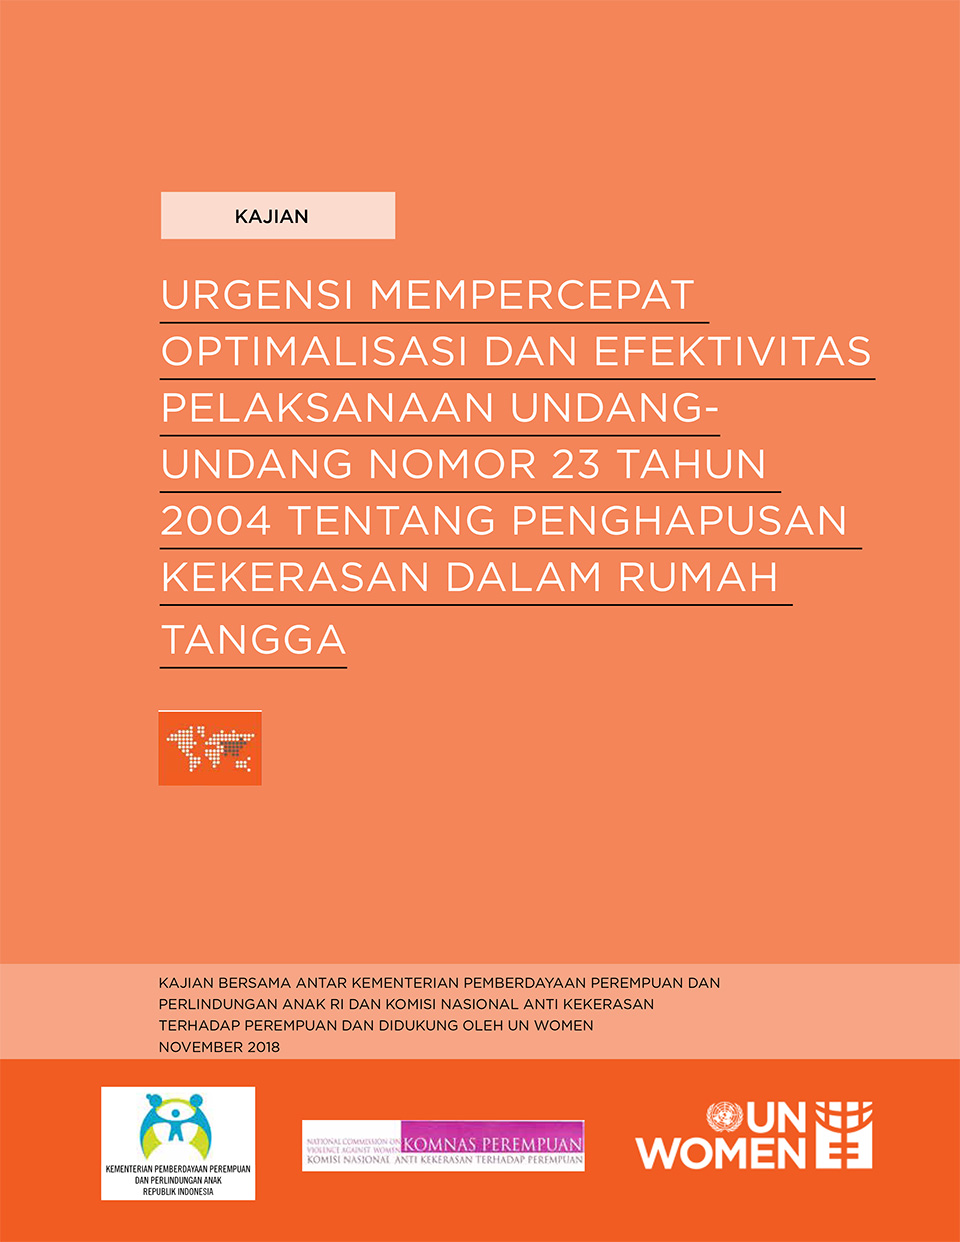 """The Academic Study of """"The Urgency of Accelerating the Optimization of the Implementation of the Law on the Elimination of Violence in the Household"""""""